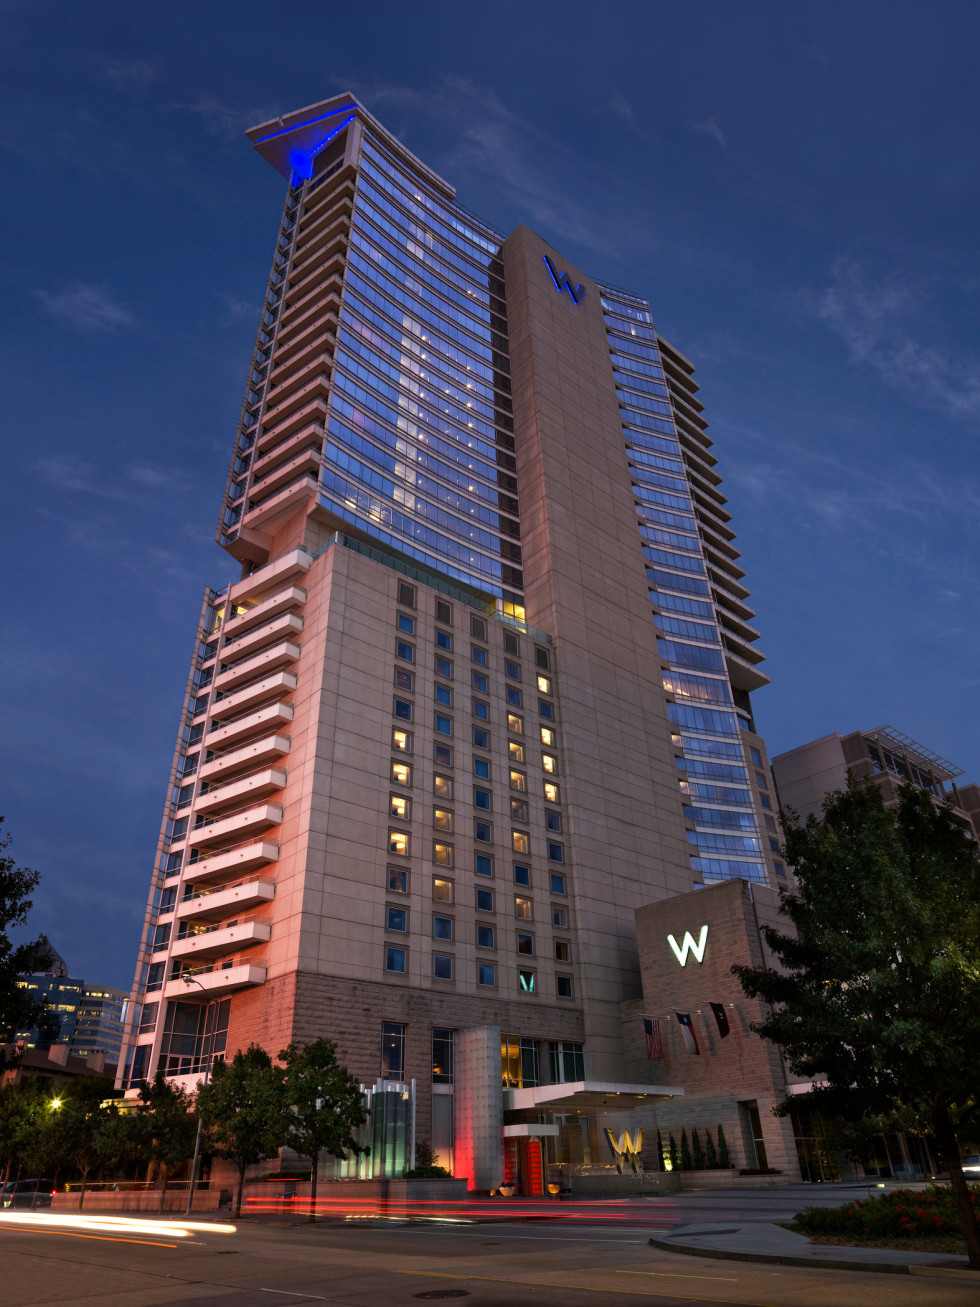 w dallas, victory exterior hotel at night